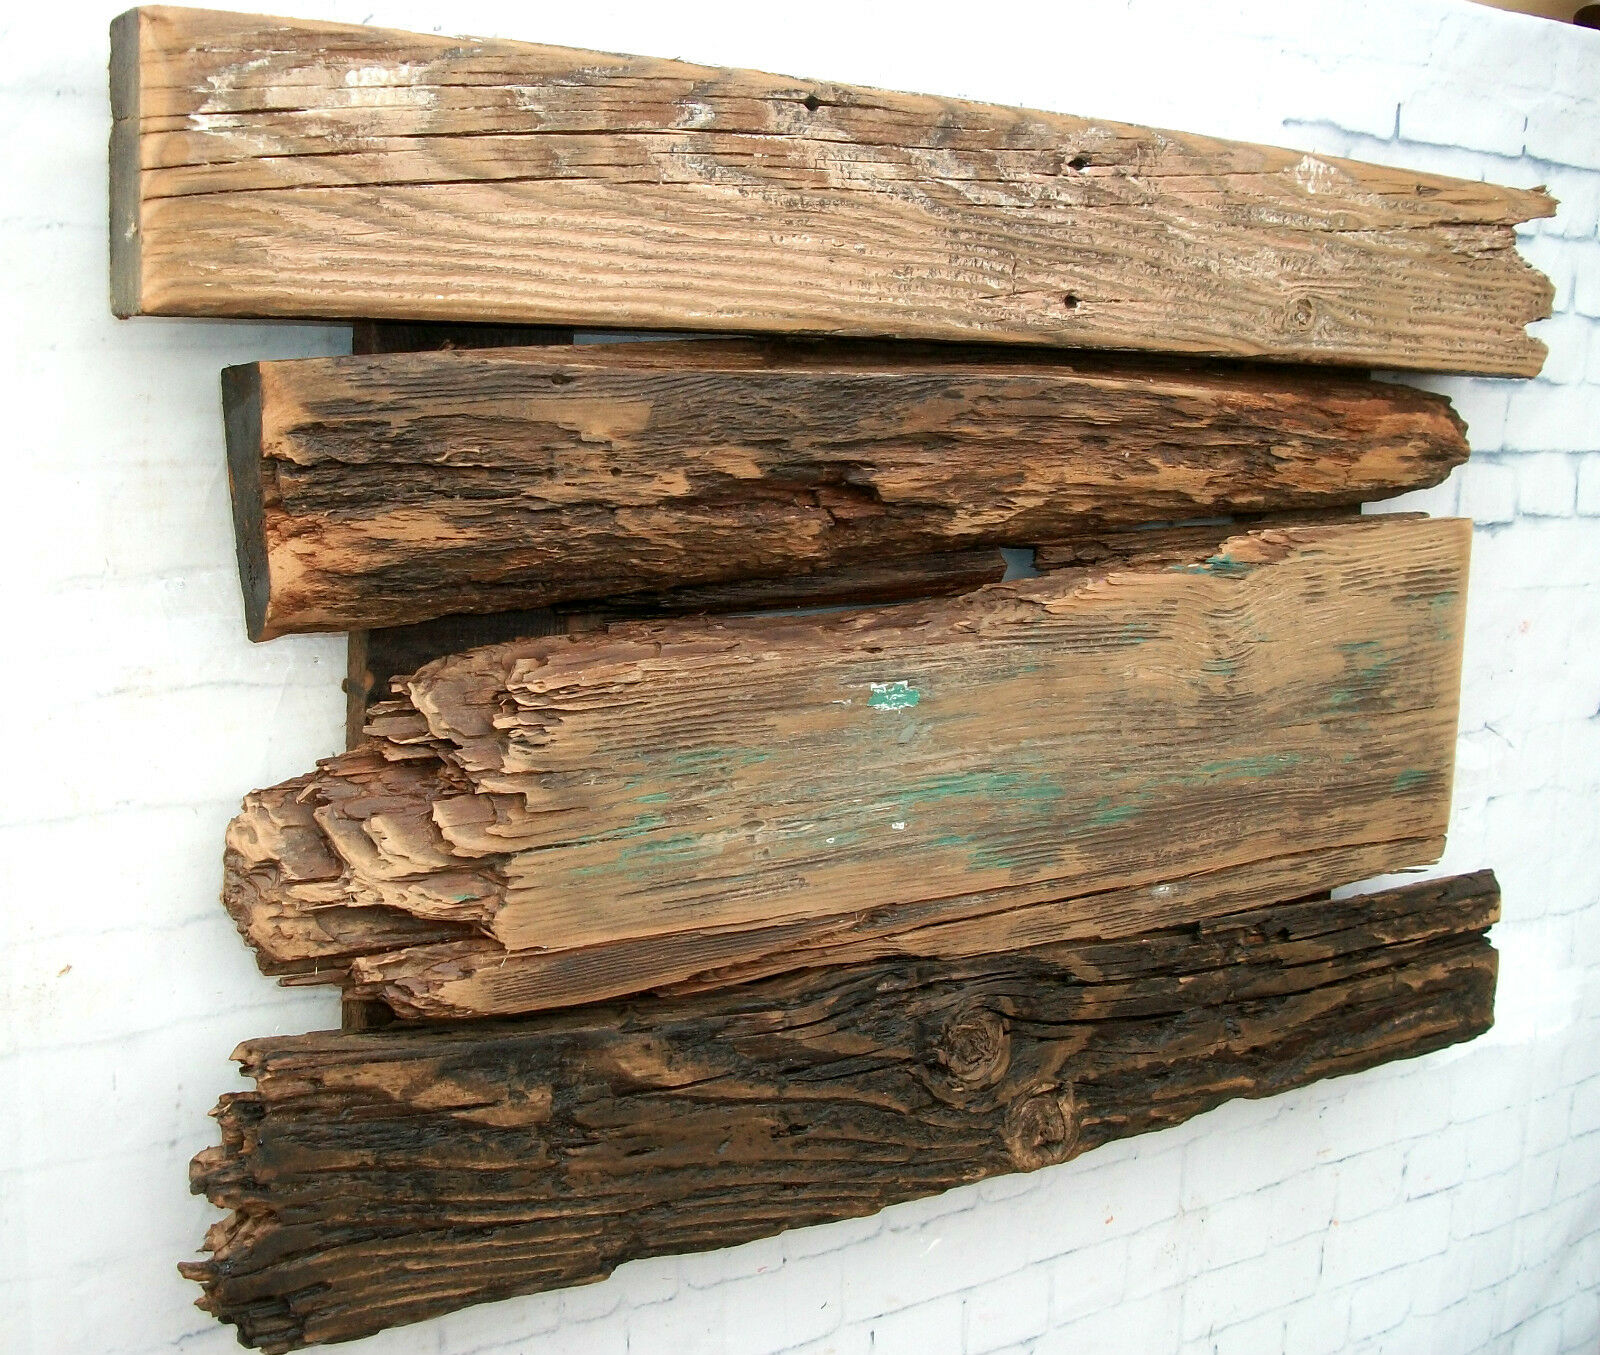 Barnwood wall art rustic decor reclaimed wood sculpture for Barnwood decor